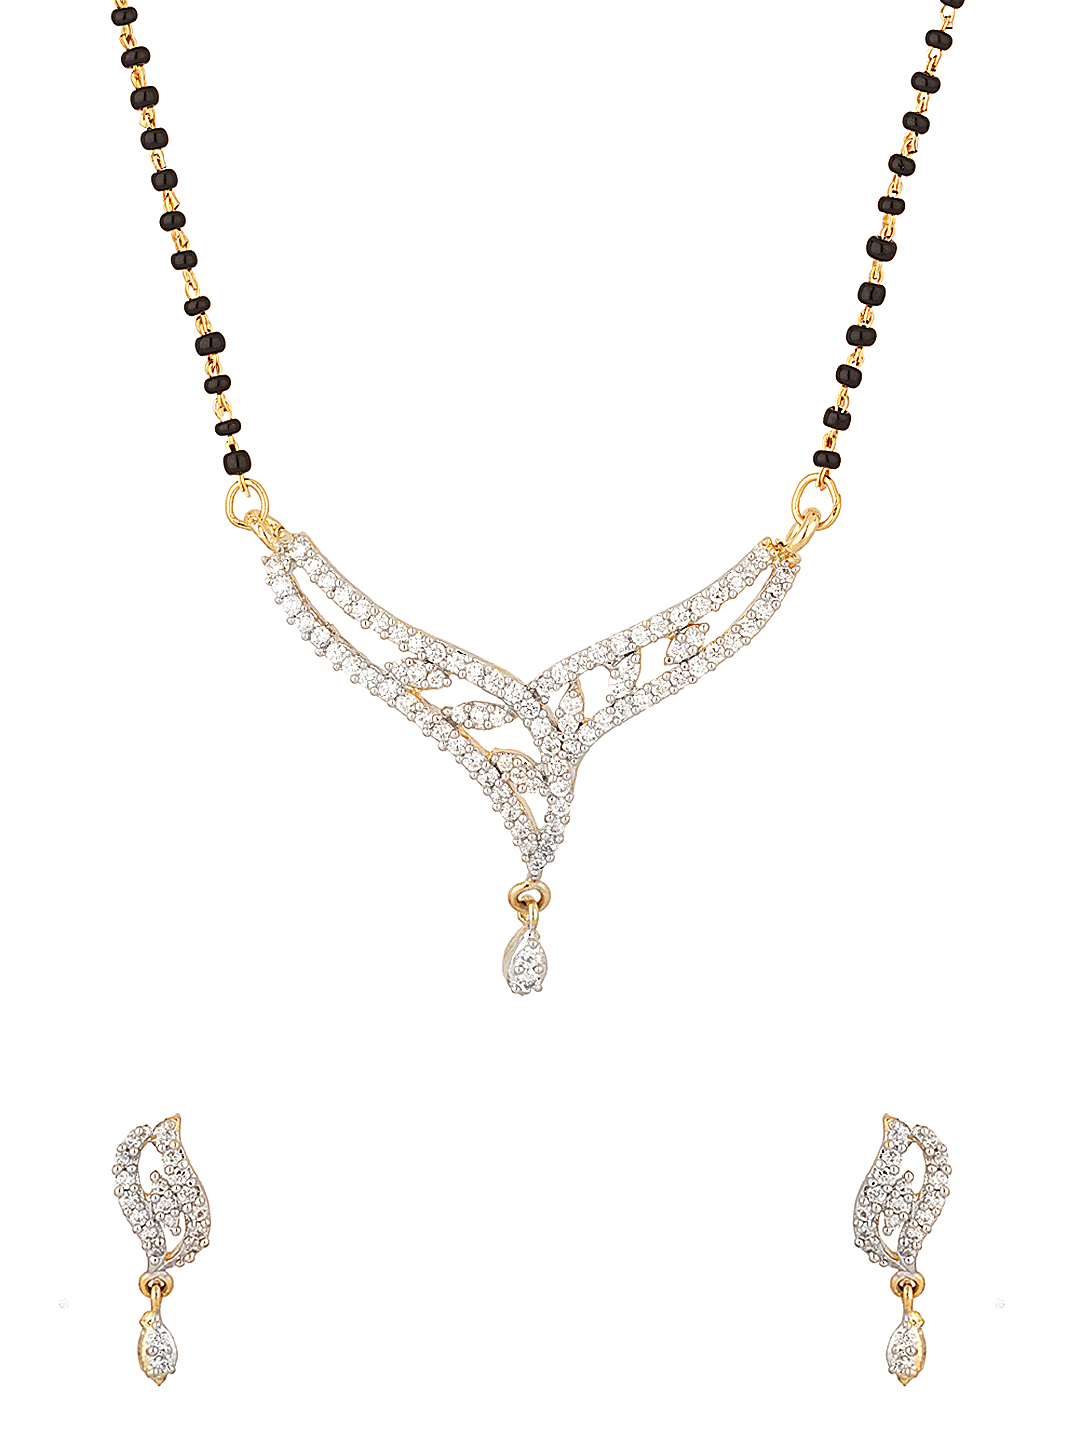 Voylla Gold-Plated & Black Mangalsutra & Earrings Set available at Myntra for Rs.40